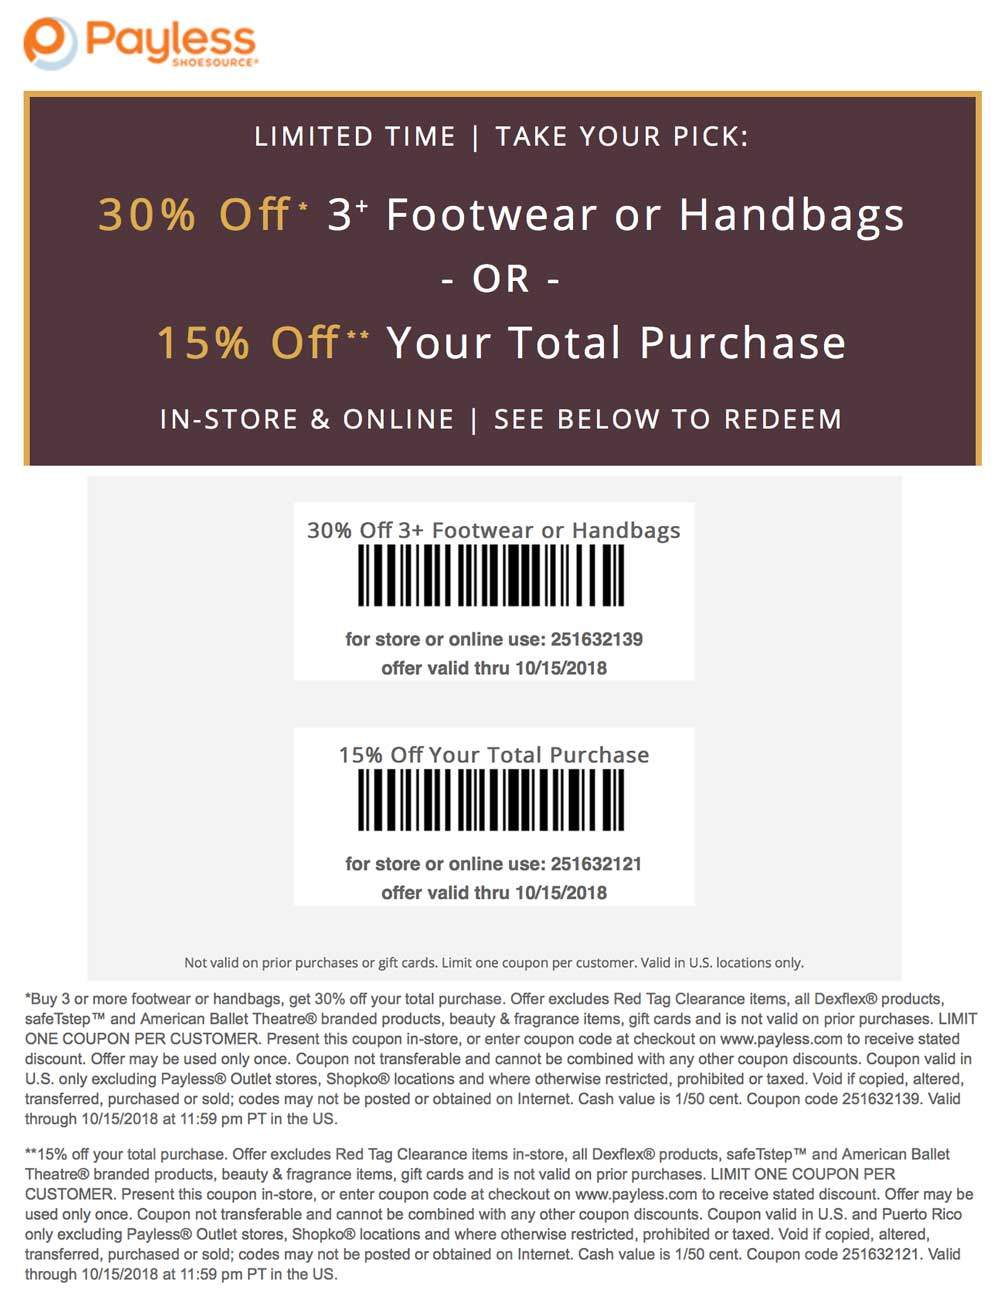 Payless Shoesource Coupon November 2019 15-30% off at Payless Shoesource, or online via promo code 251632121